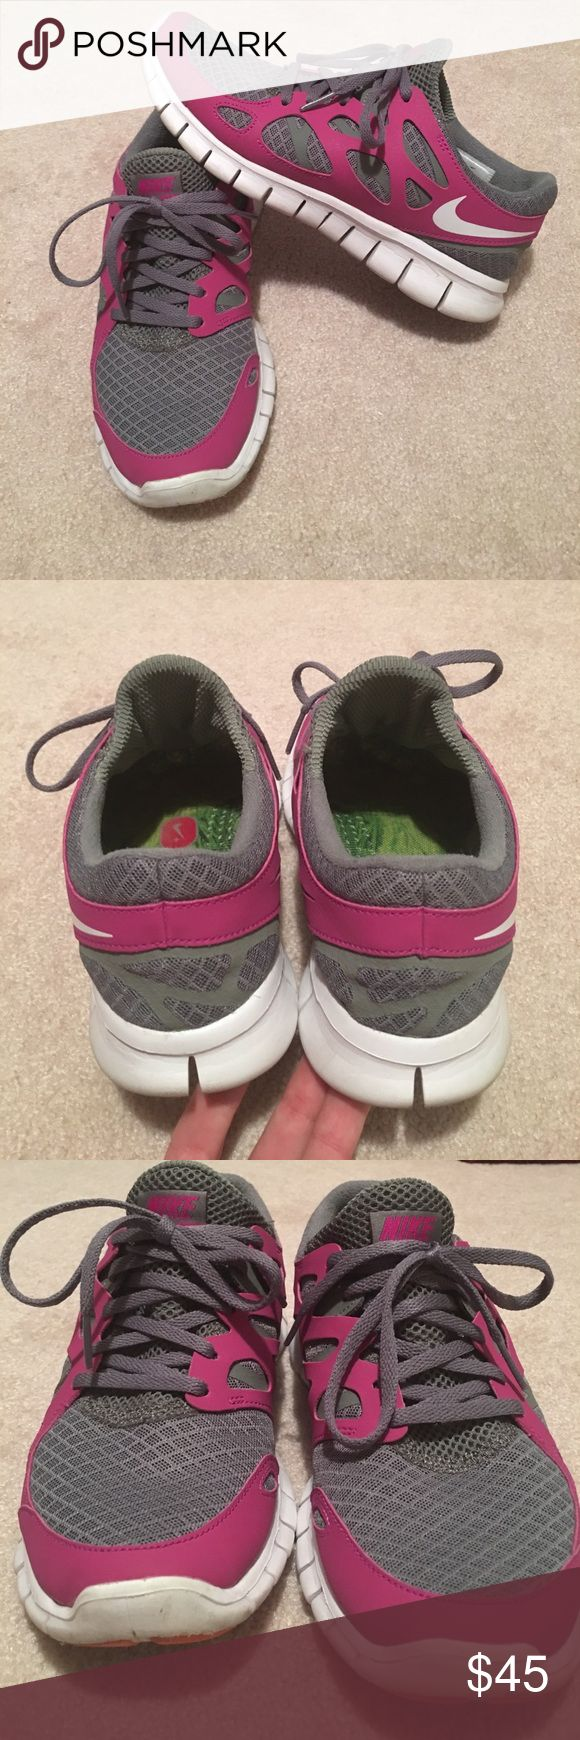 Nike Free Run 2 Euc. Only worn a few times. Have too many shoes and trying to only keep what I really wear. Smoke and pet free home Nike Shoes Athletic Shoes